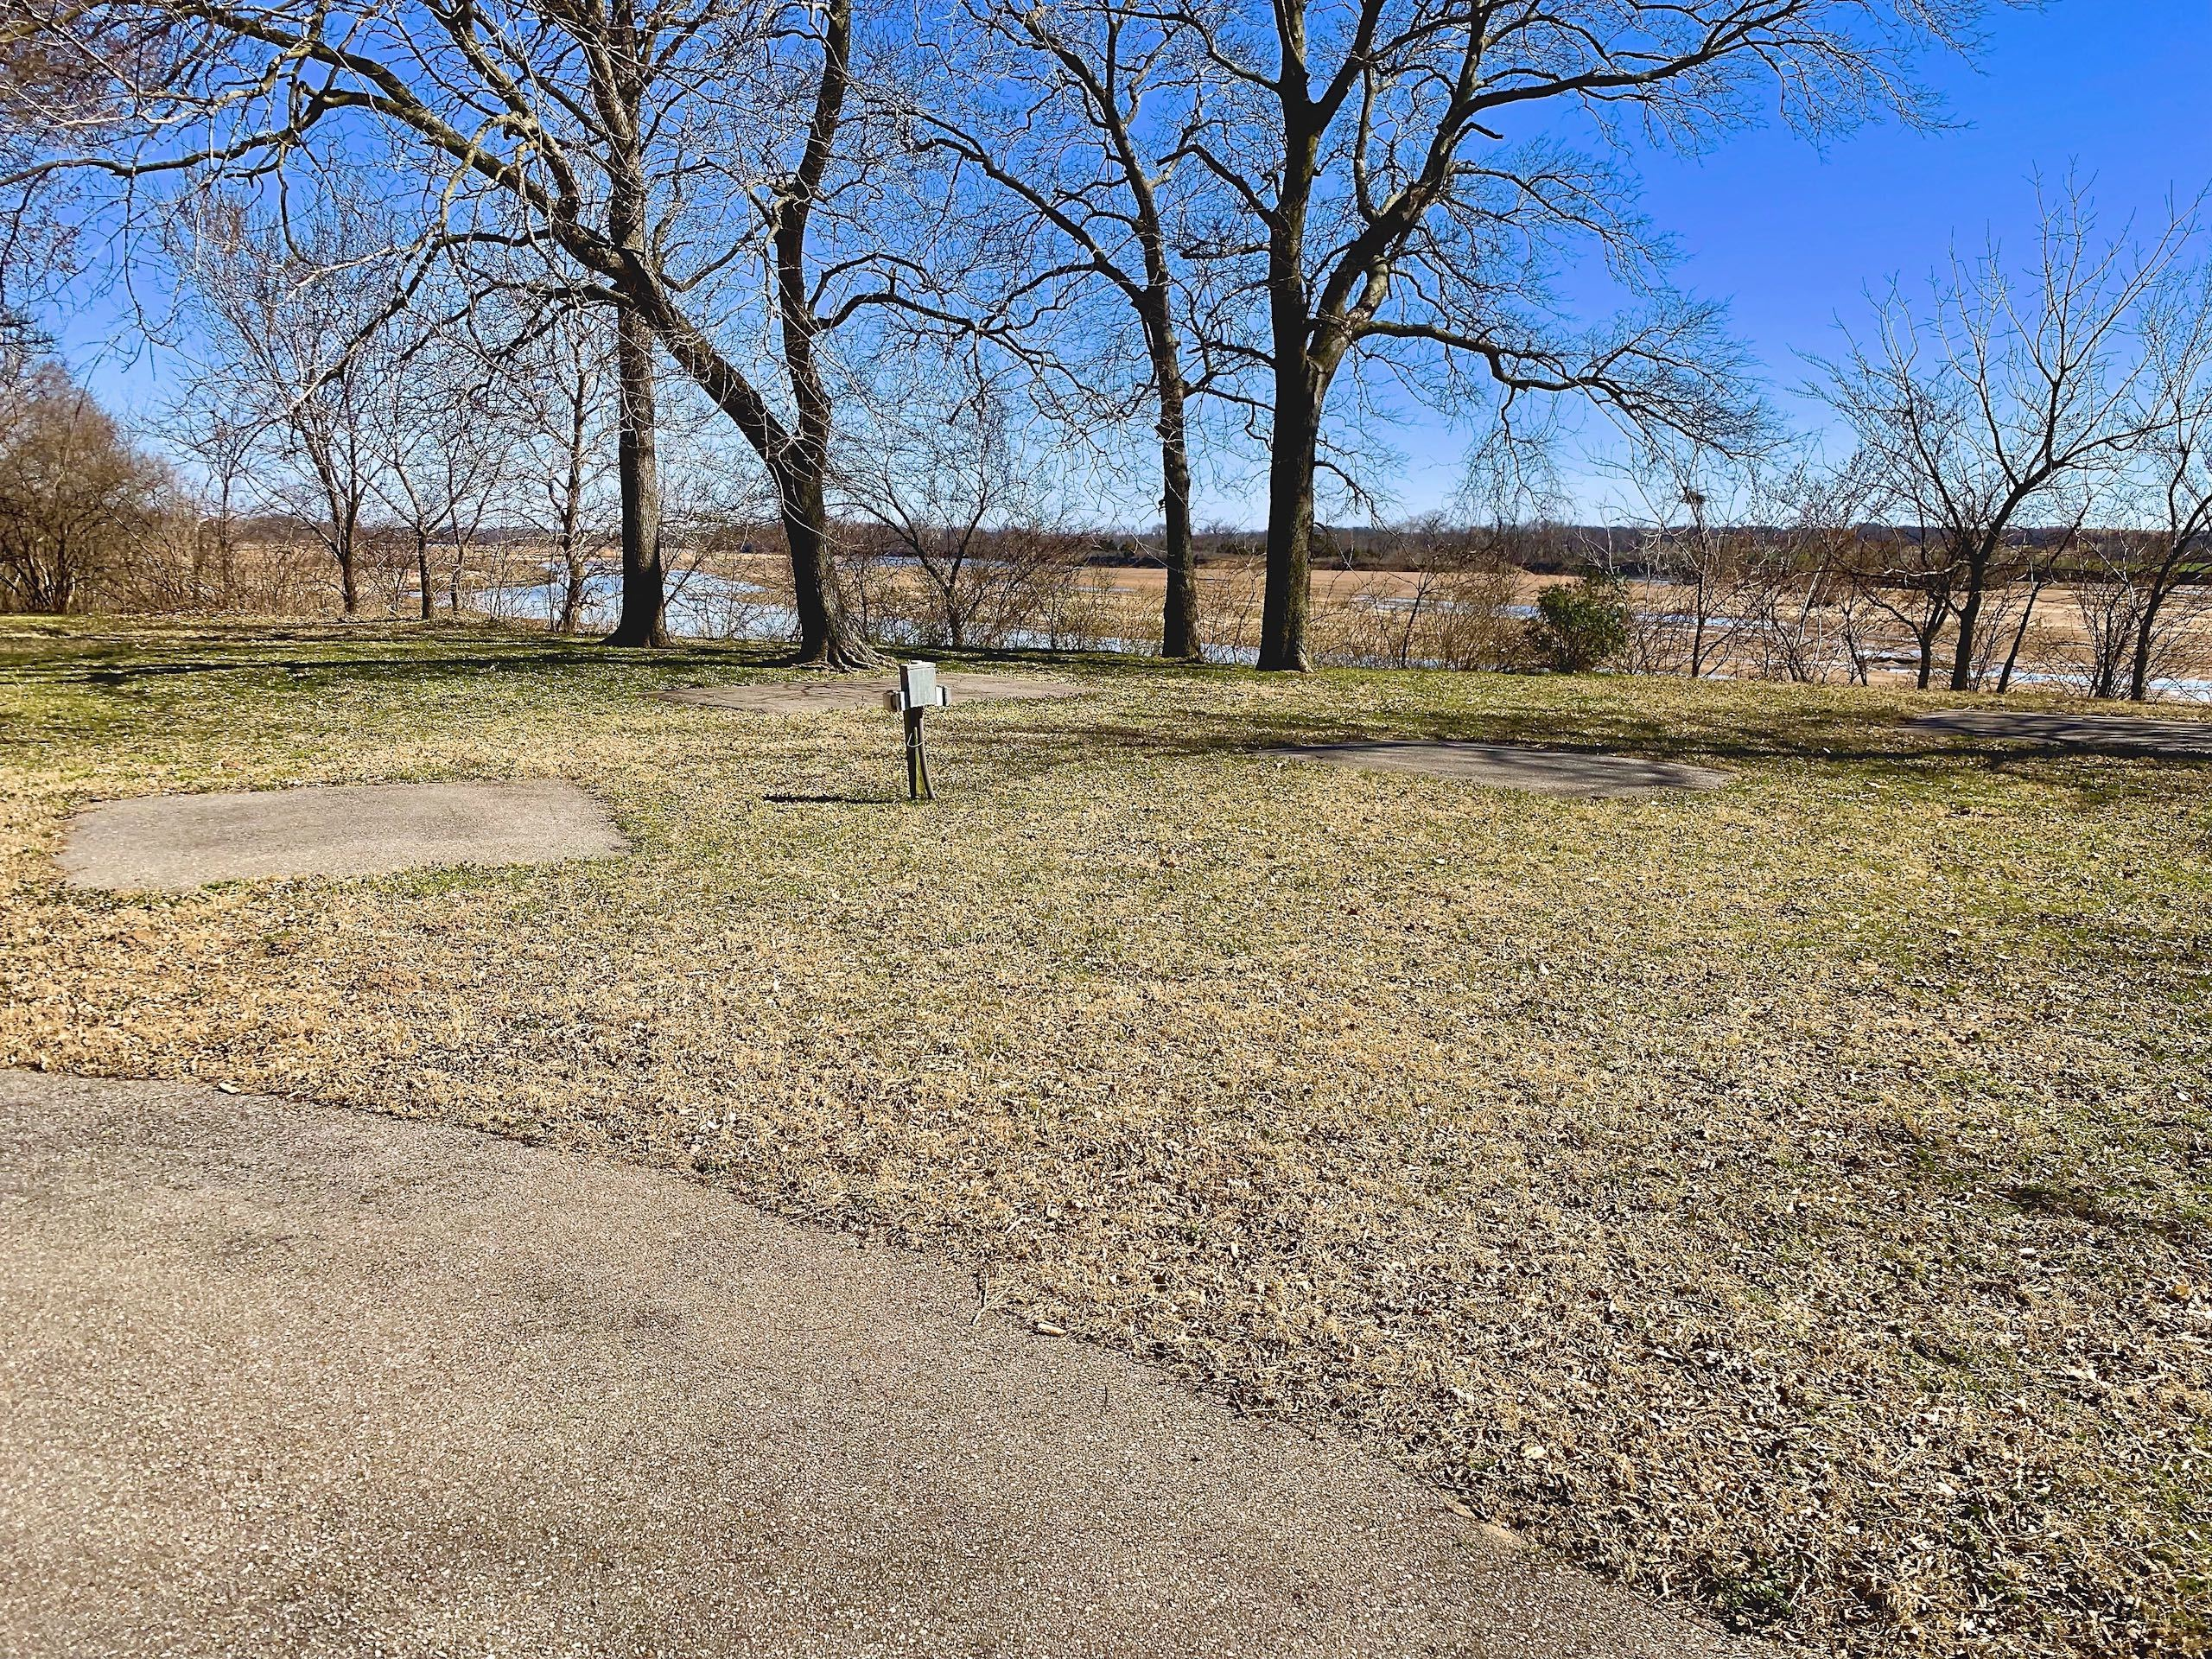 Ponca City OK_ACRAGE-011-Multiple-picnic-areas-with-electricity-already-in-place